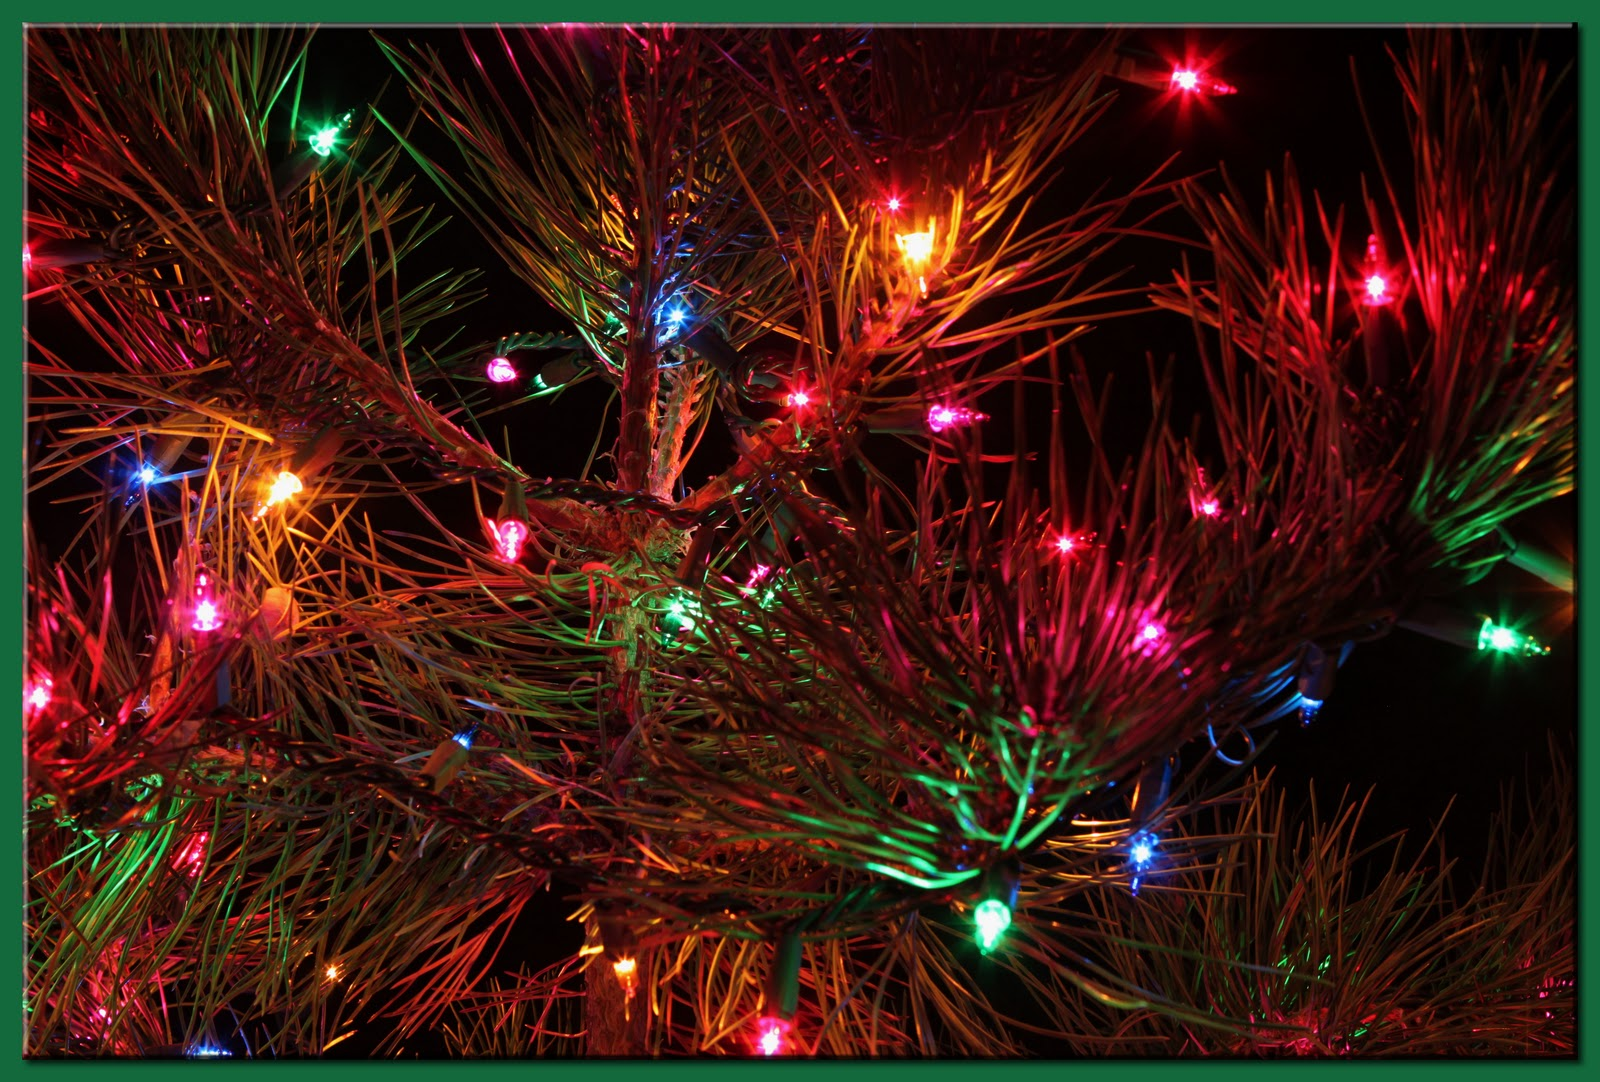 Walk the Dog, Dave: December, Day 4 - A Charlie Brown Christmas Tree